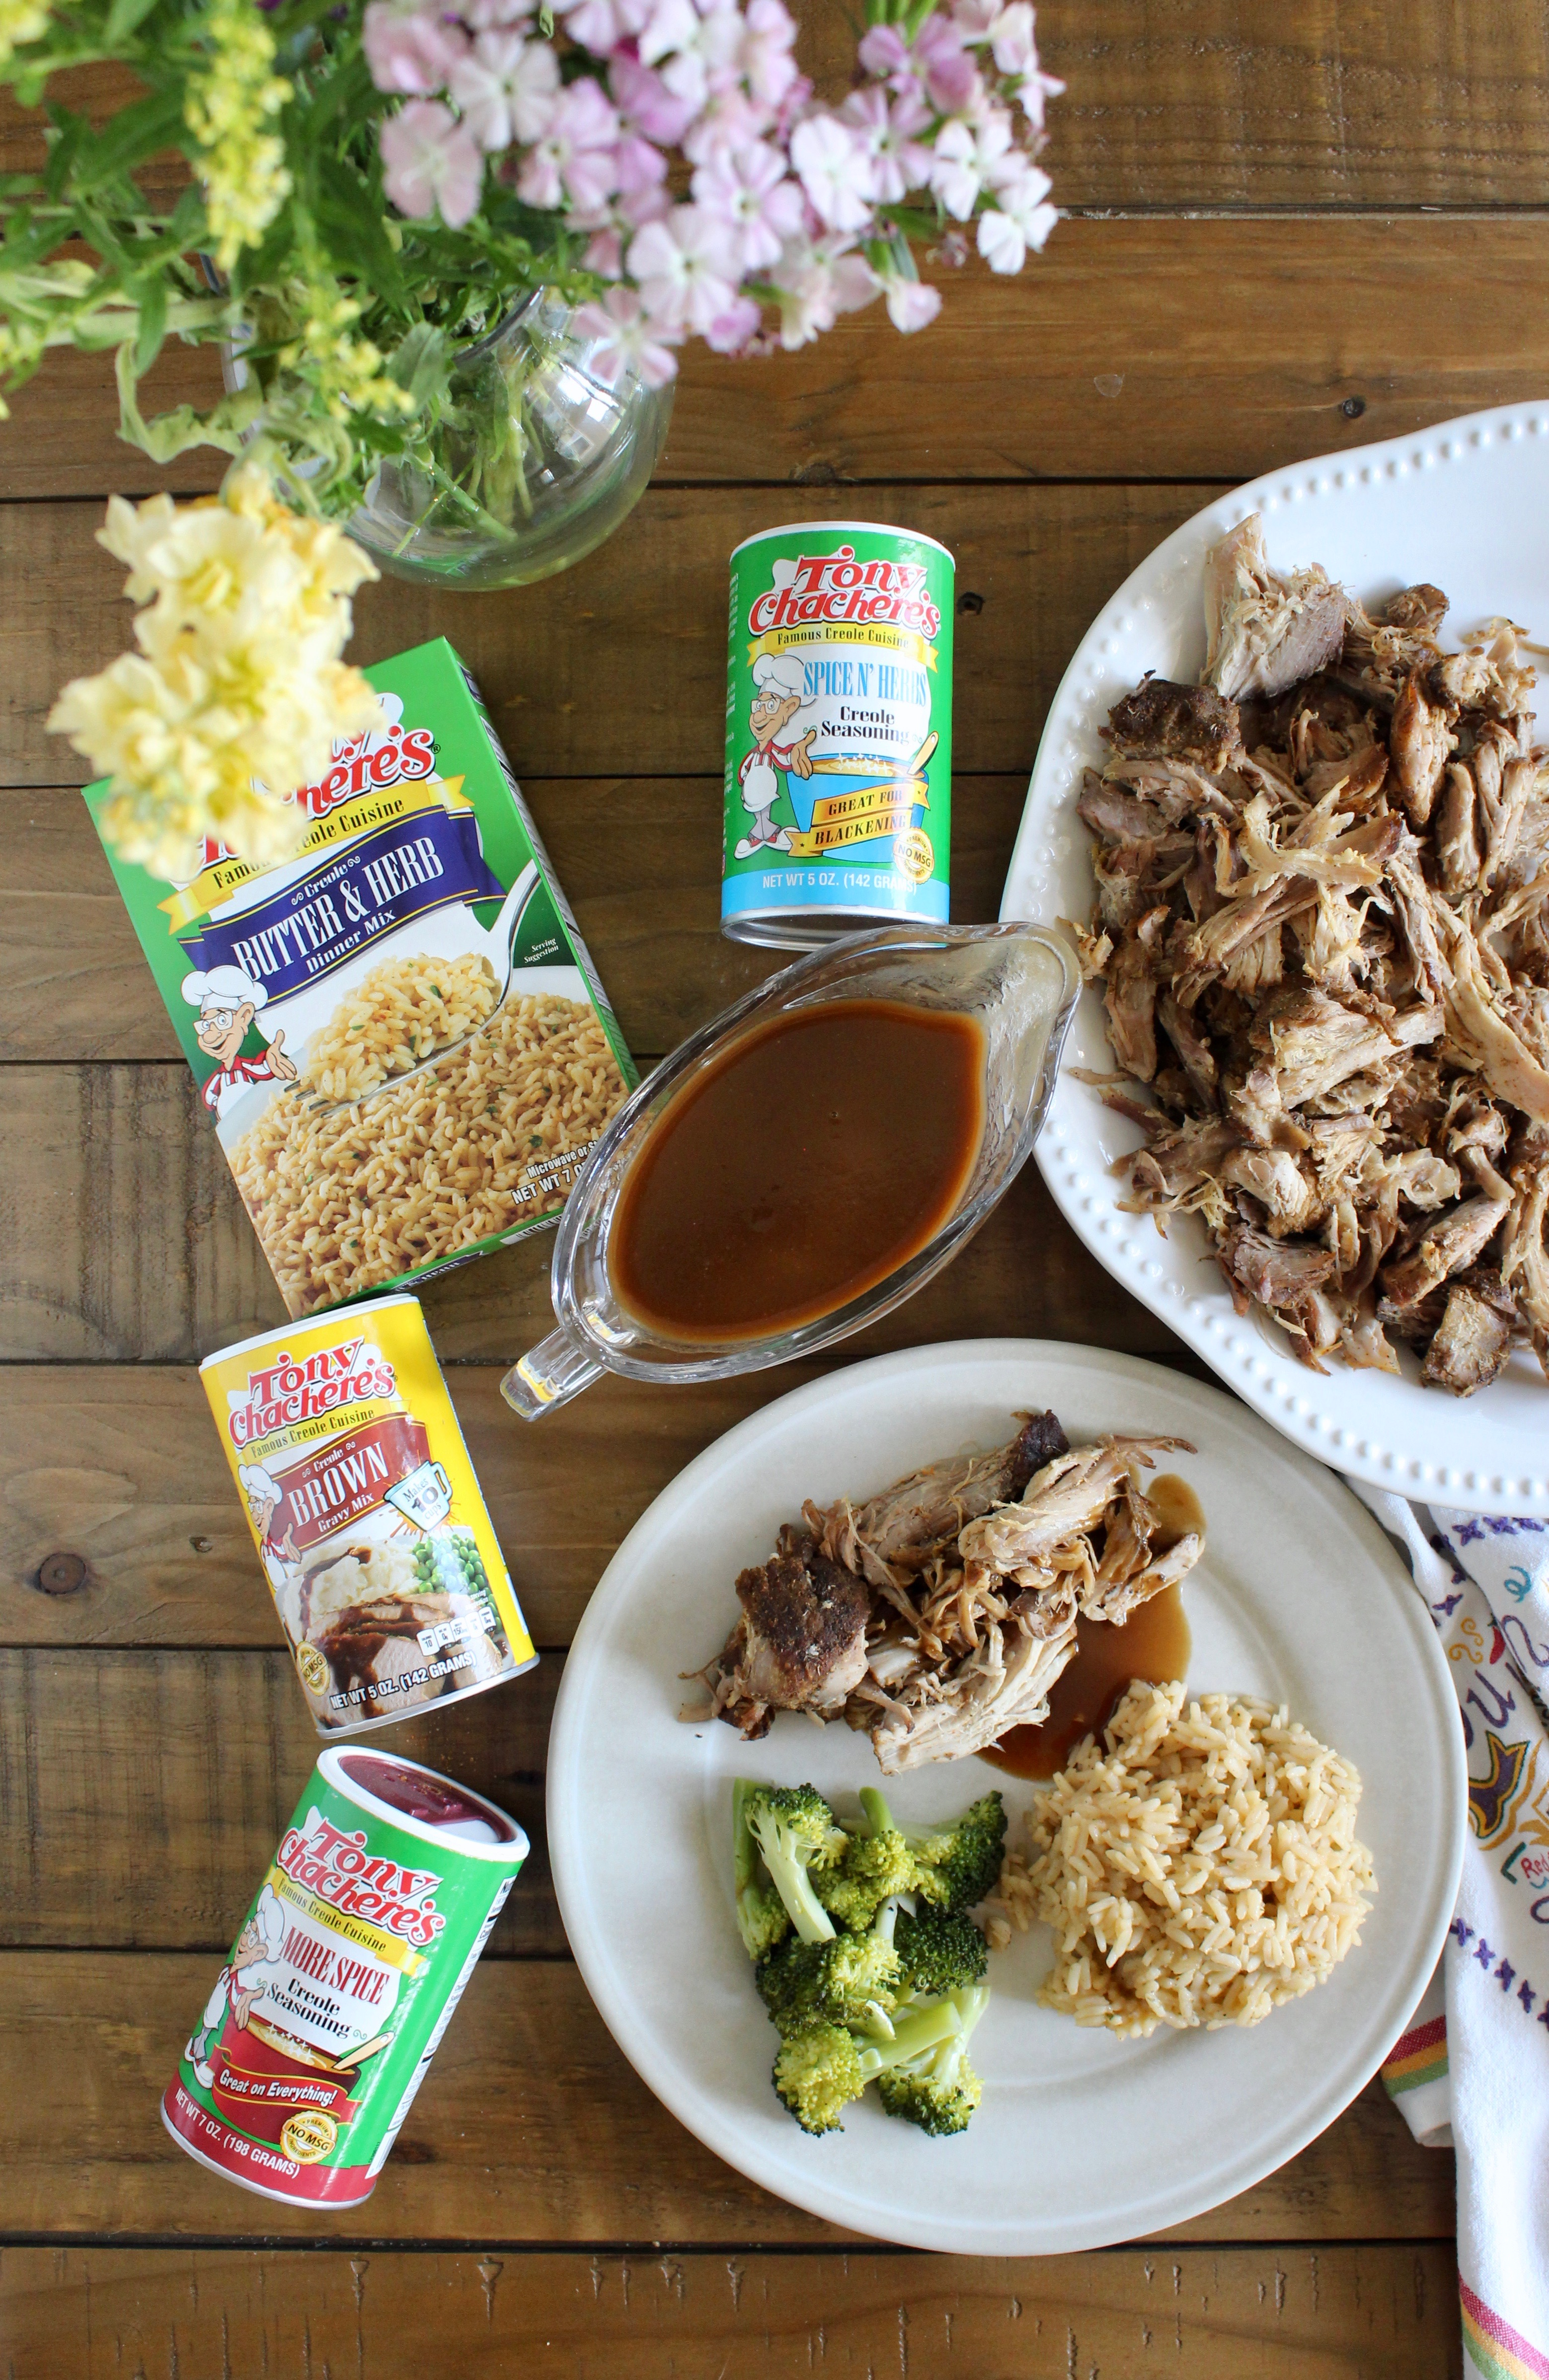 Slow Cooker Pork Roast with Tony Chachere's seasonings used